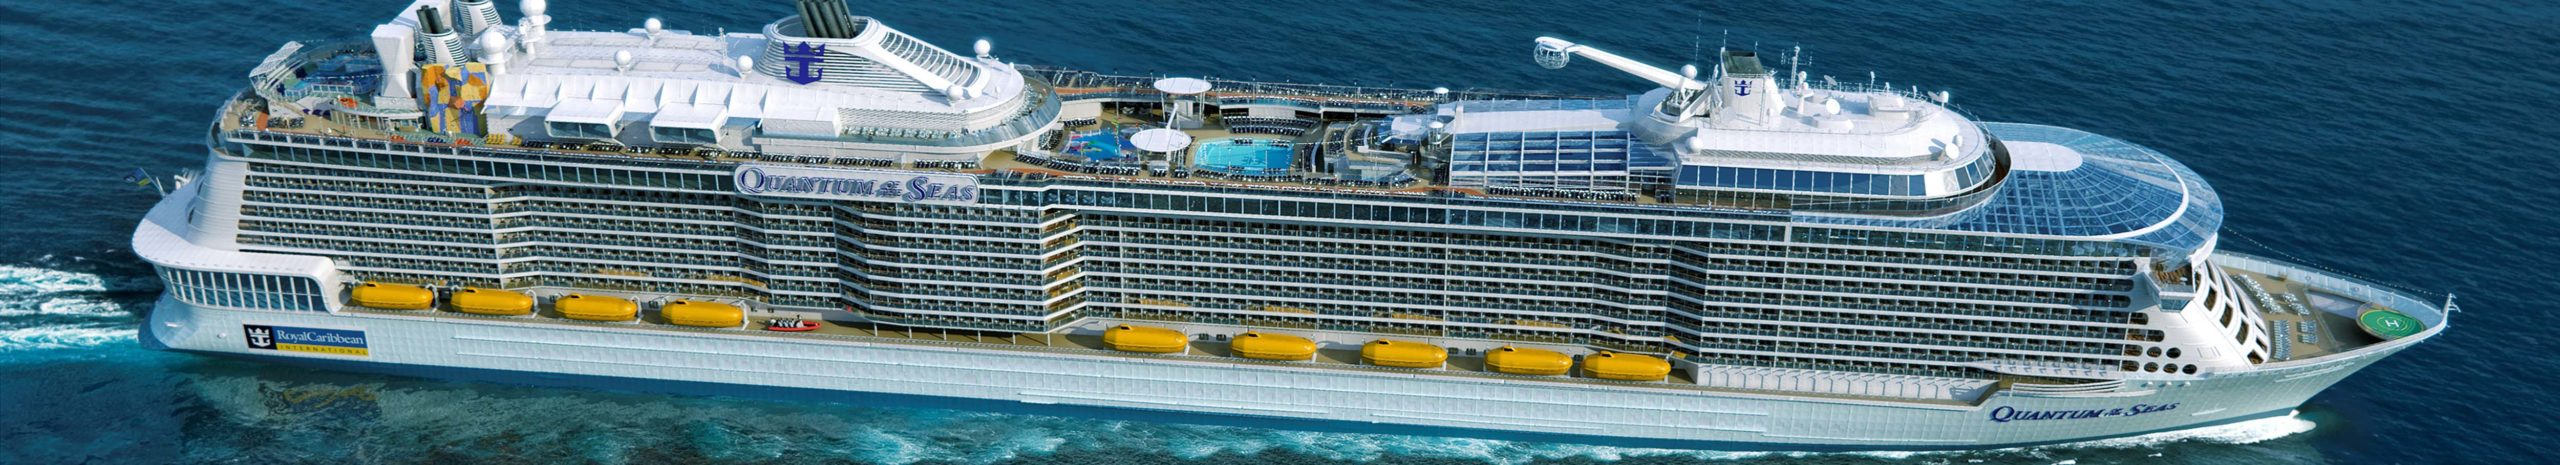 Юго-Восточная Азия<br> Quantum of the Seas (Royal Caribbean International)